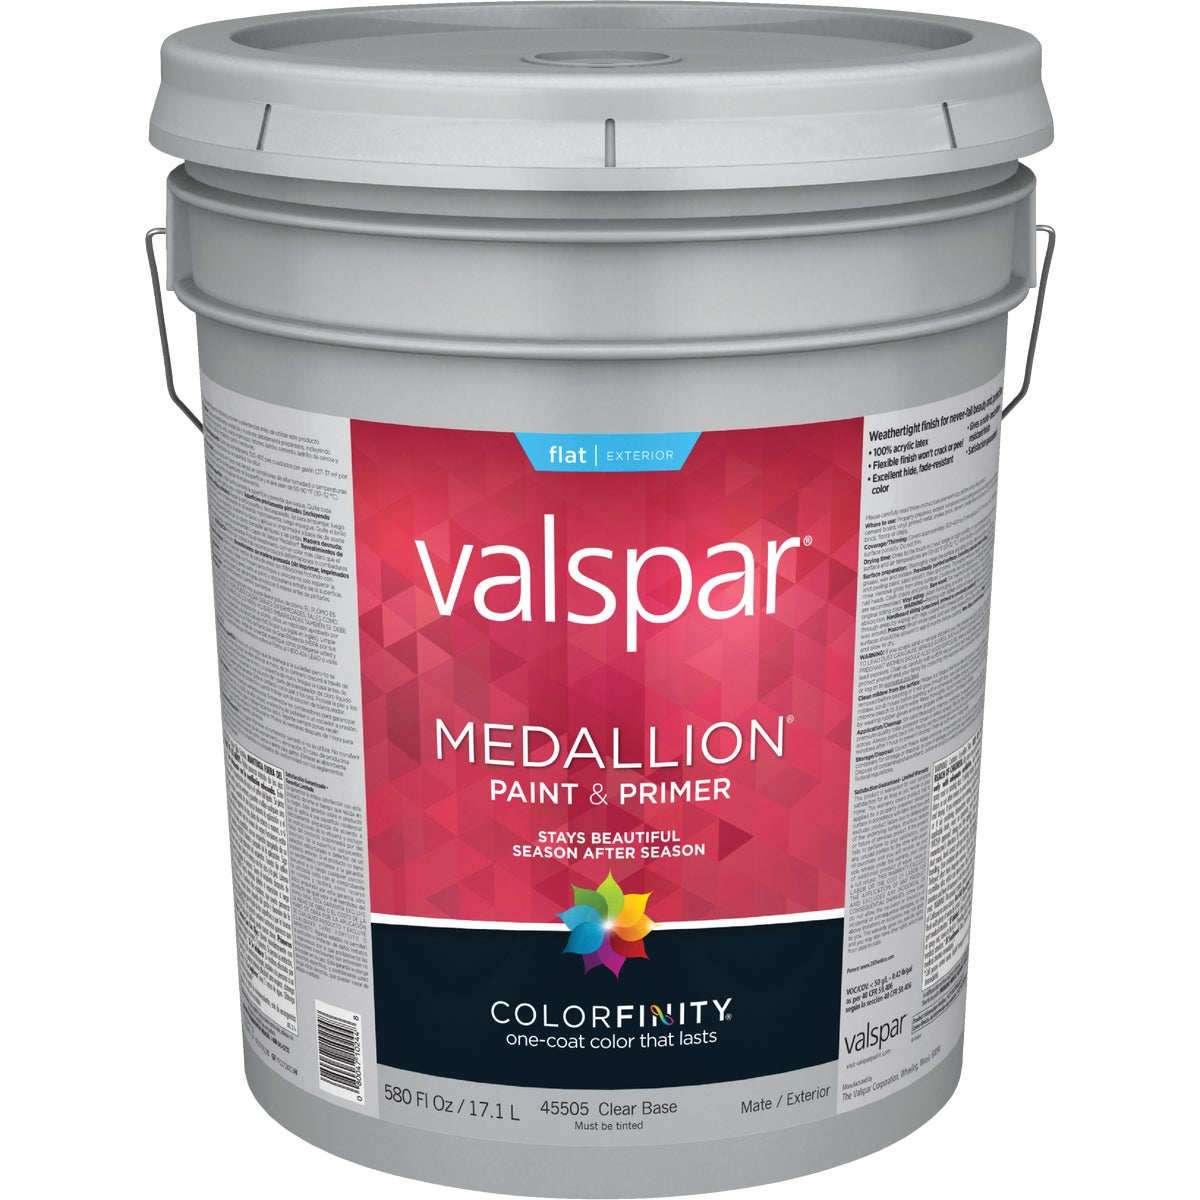 EXT FLAT CLEAR BS PAINT - 027.0045505.008 by Valspar Corp